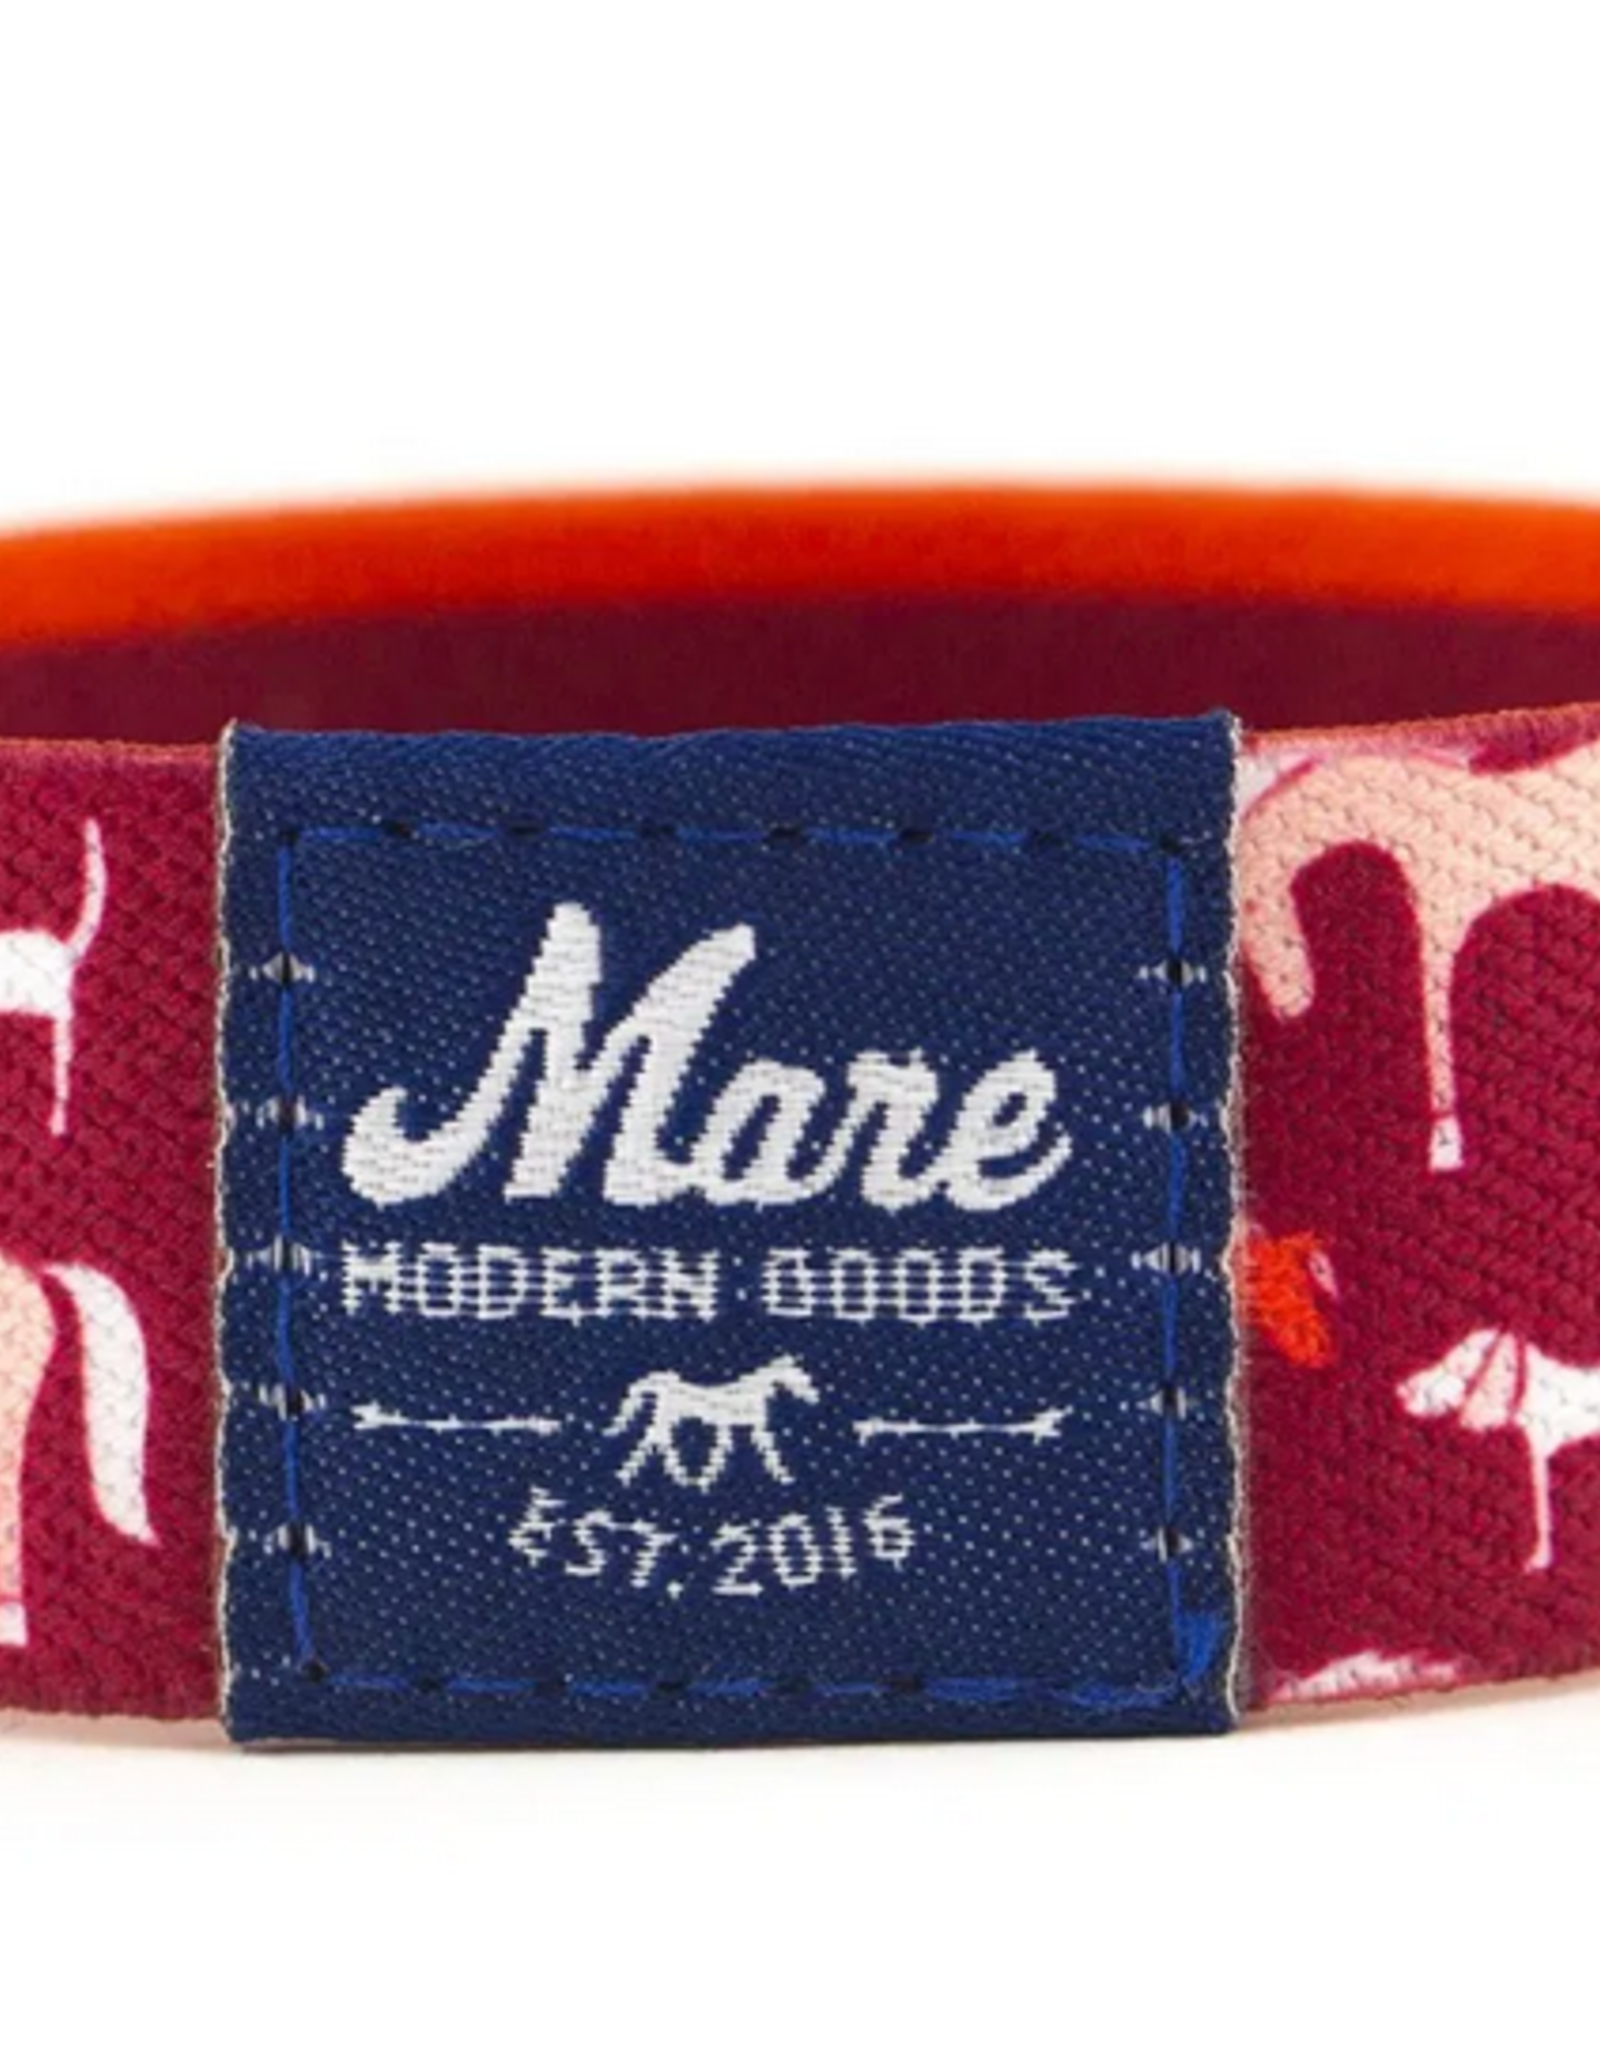 Mare Goods Mare Goods Mindfilly Band